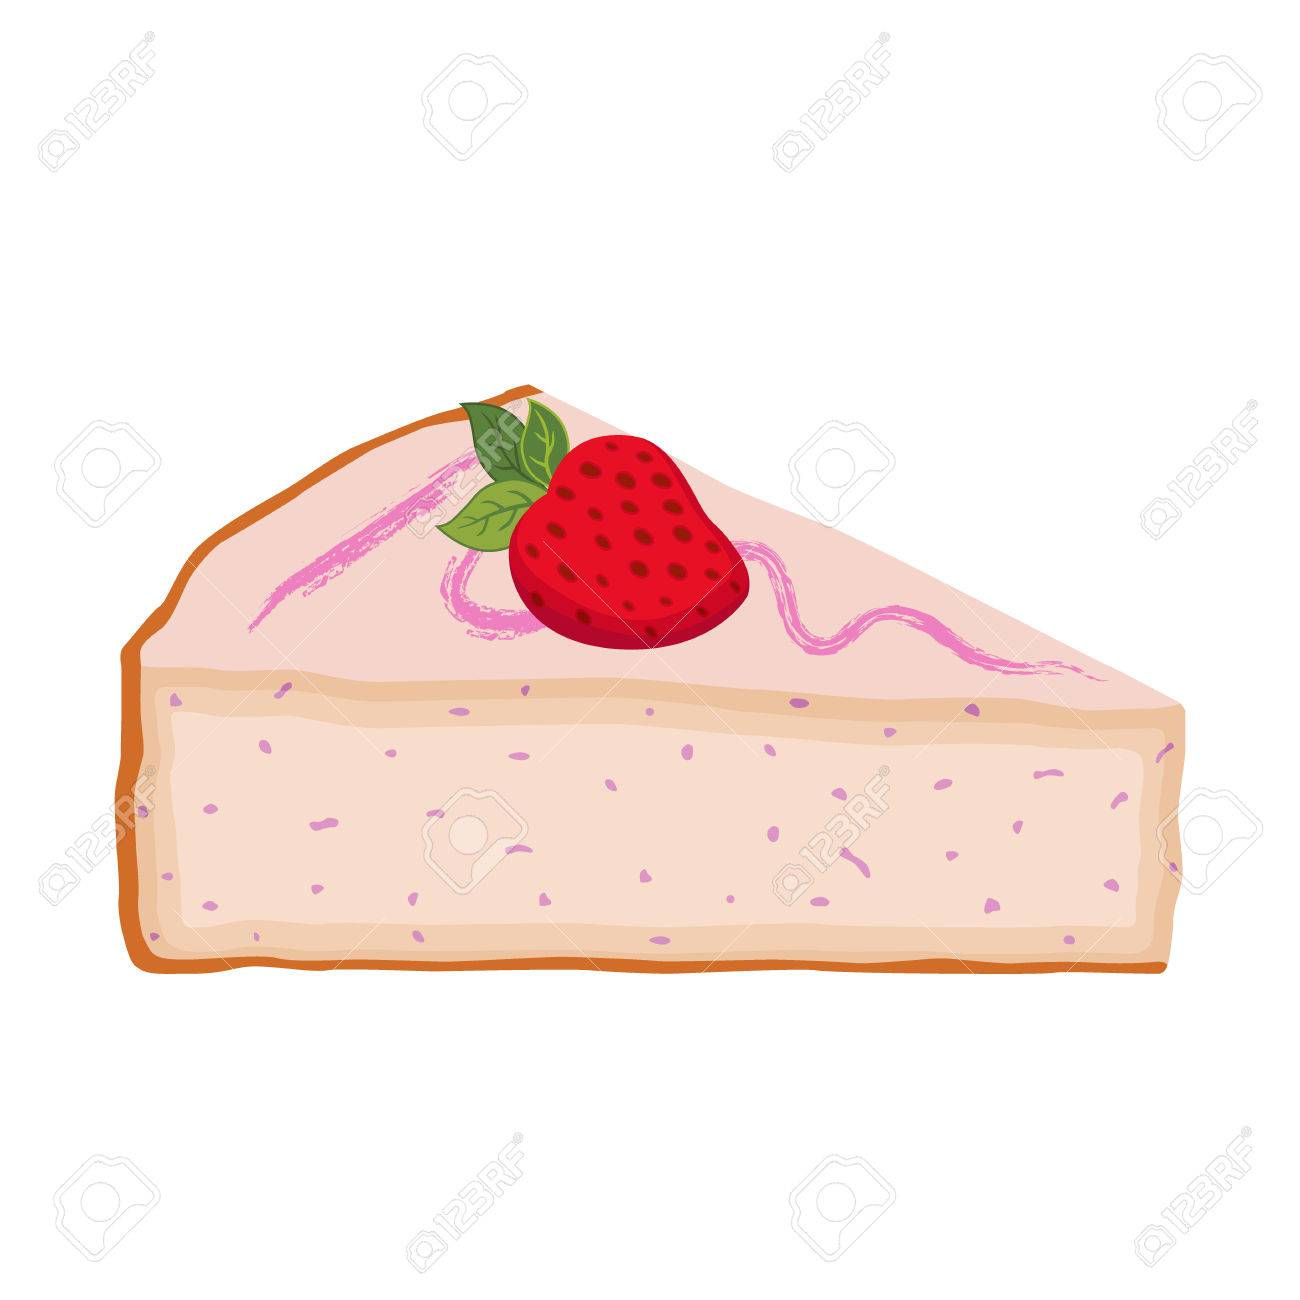 hight resolution of slice of cake with strawberry cheesecake with berries flat style stock vector